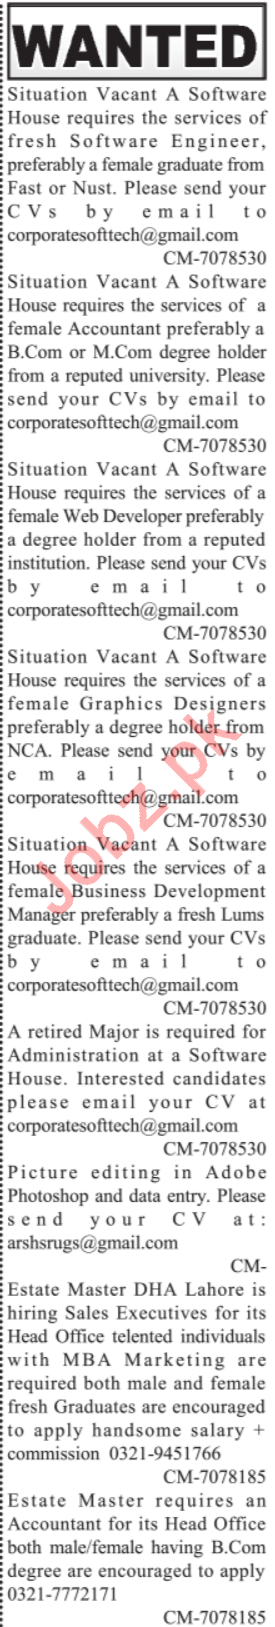 Software Houses Jobs 2020 in Lahore